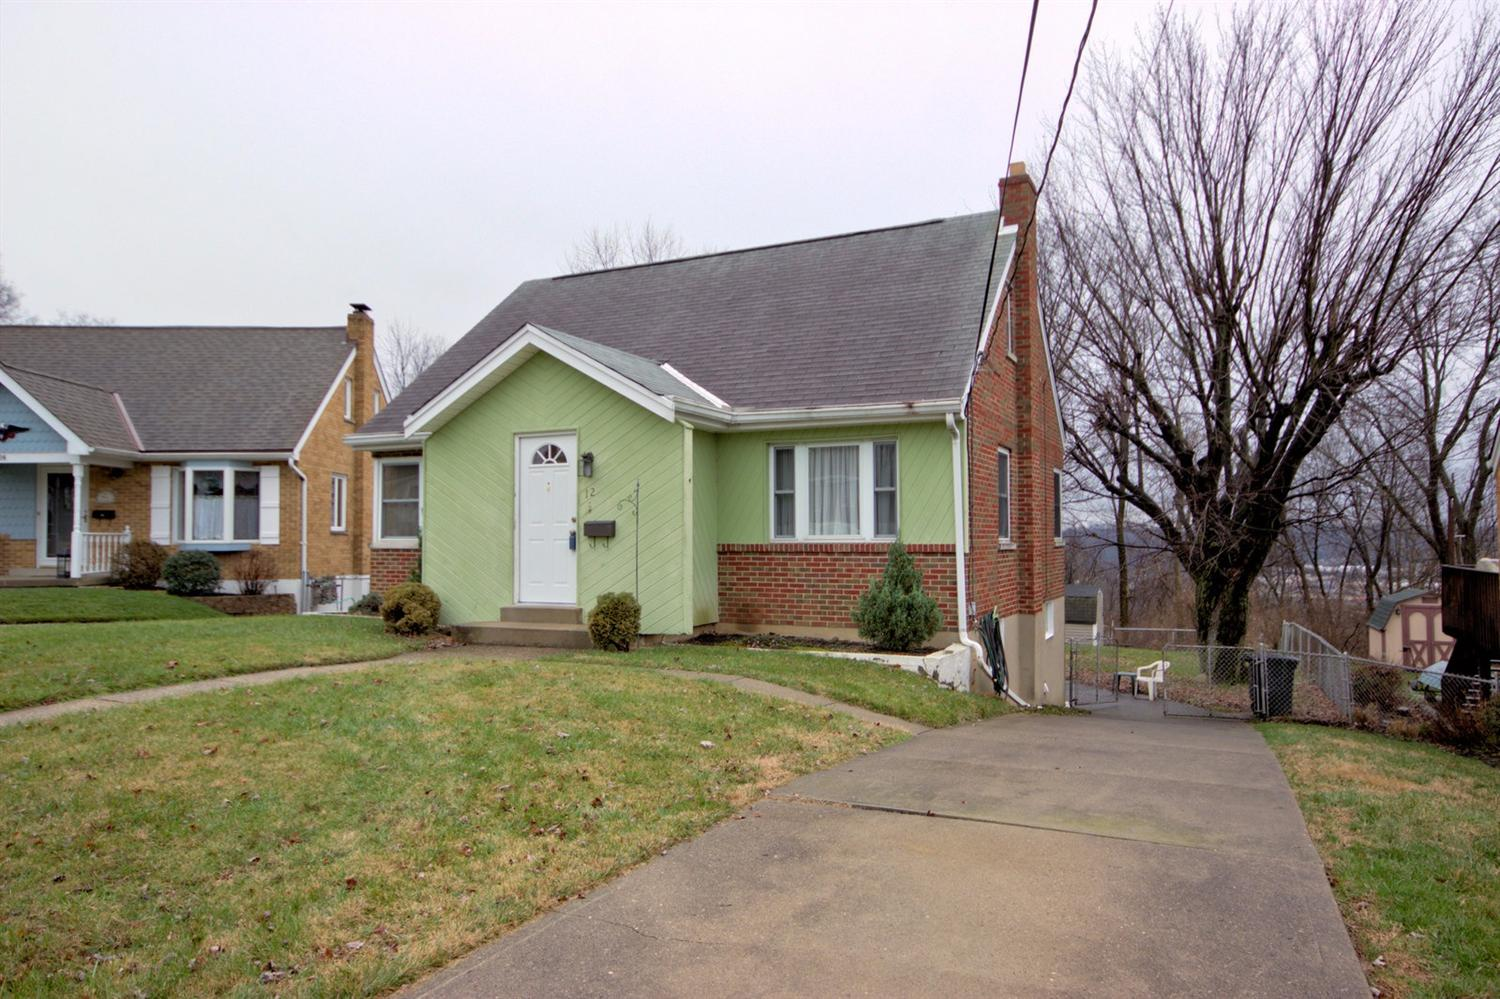 Photo 1 for 12 S Sherry Ln Bellevue, KY 41073